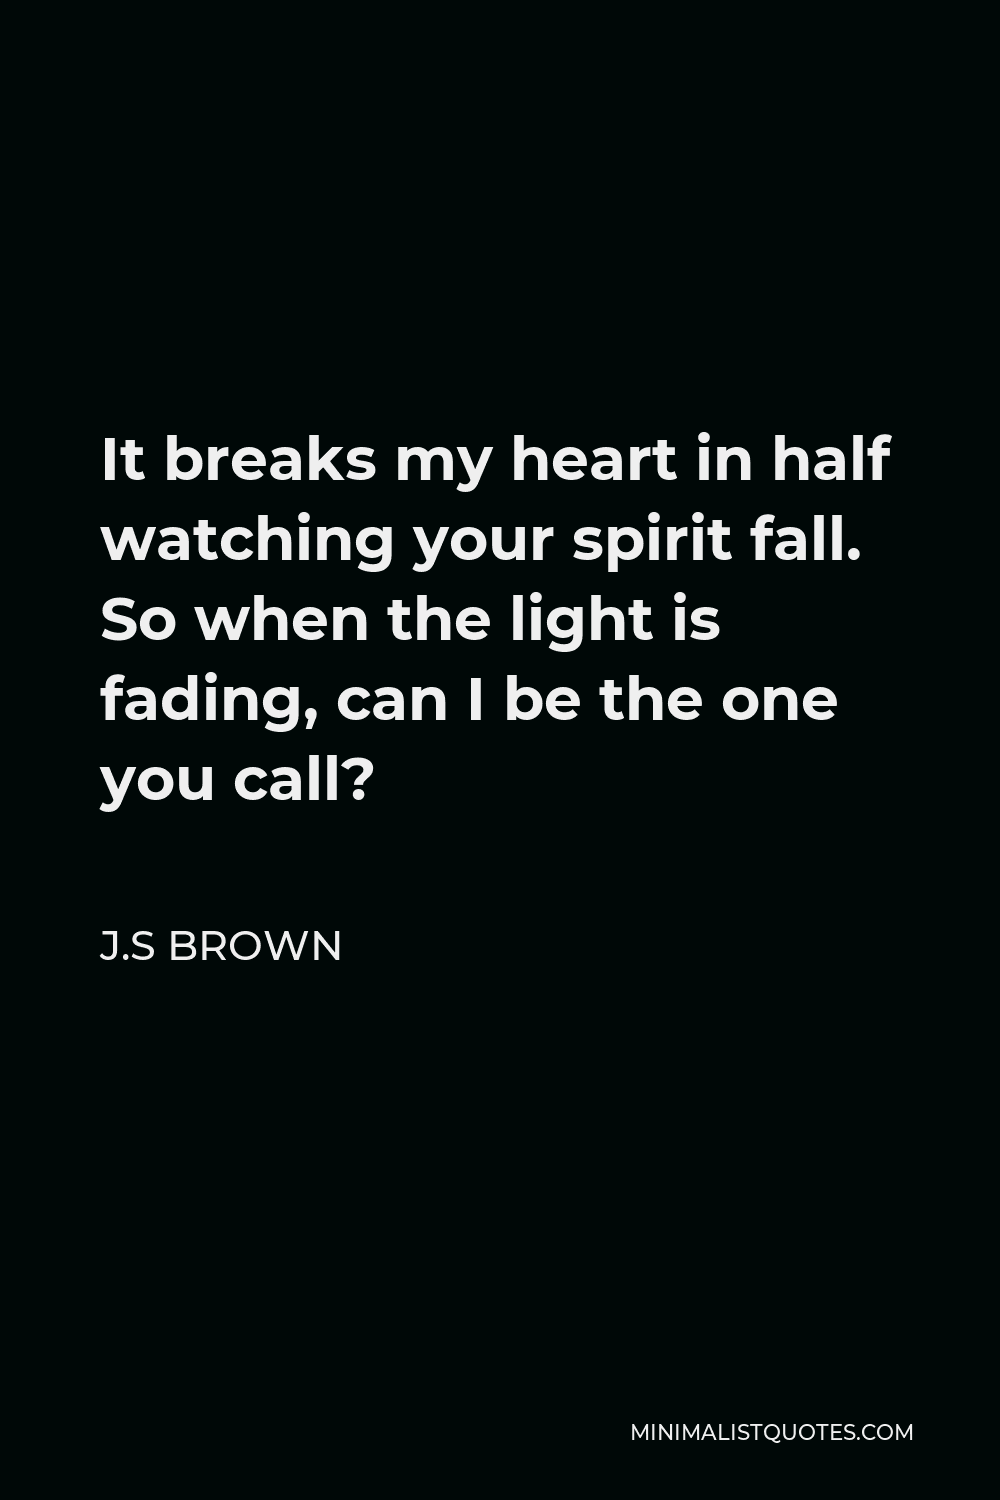 J.S Brown Quote - It breaks my heart in half watching your spirit fall. So when the light is fading, can I be the one you call?